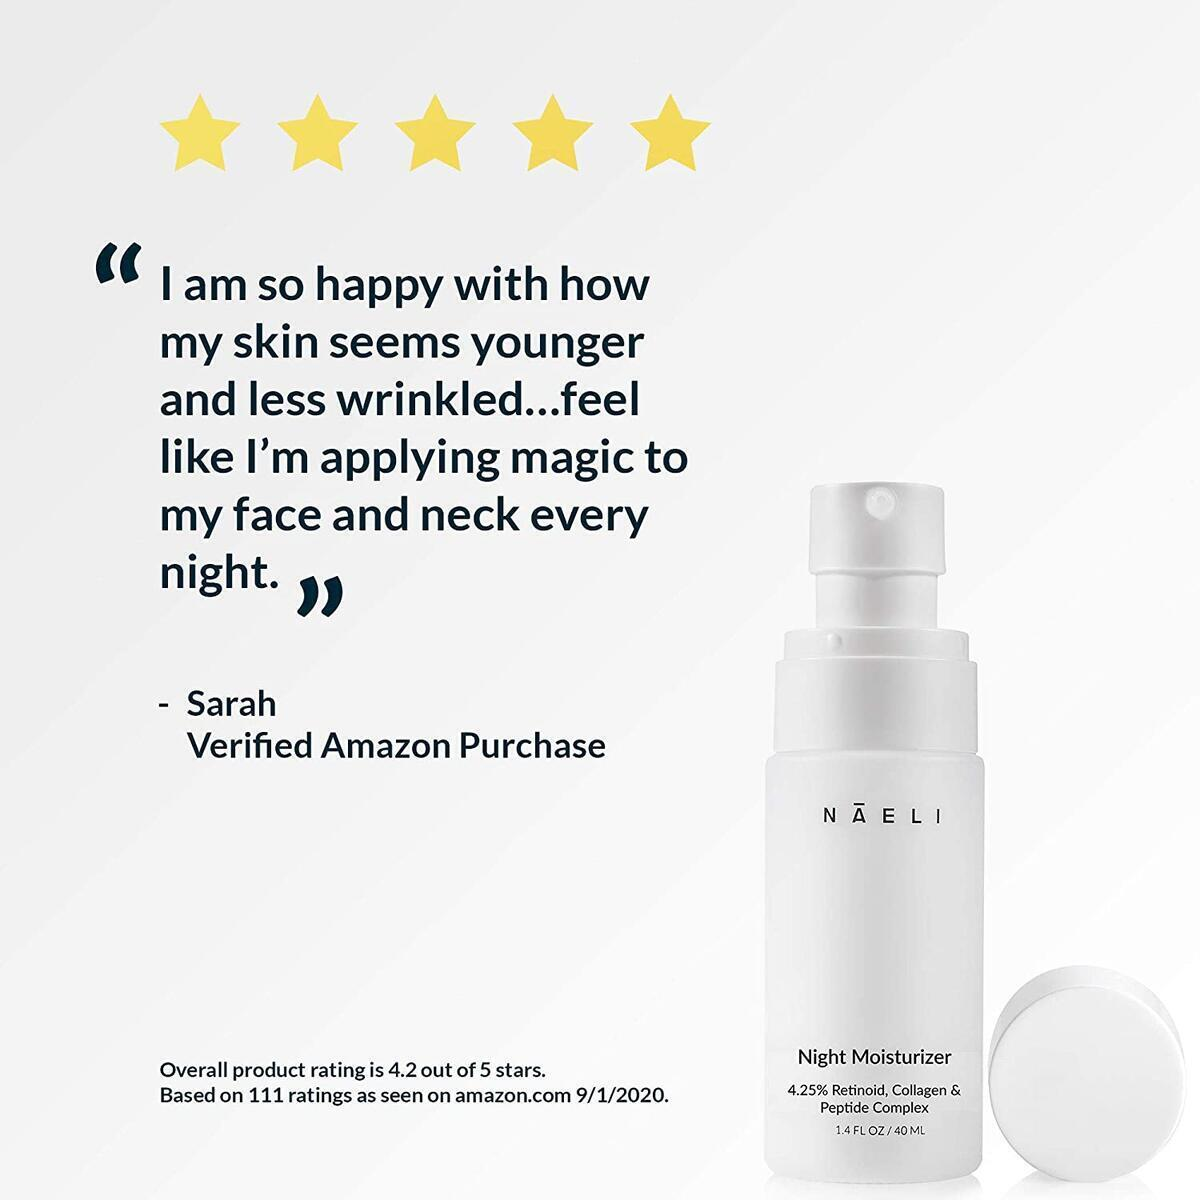 Retinol Cream For Face - 4.25% Retinol Night Moisturizer with Collagen & Peptides - Anti Aging Complex For Wrinkles, Fine Lines & Skin Tone. Boosts Natural Collagen Production - Skincare For Women & Men, 1.4 oz.…